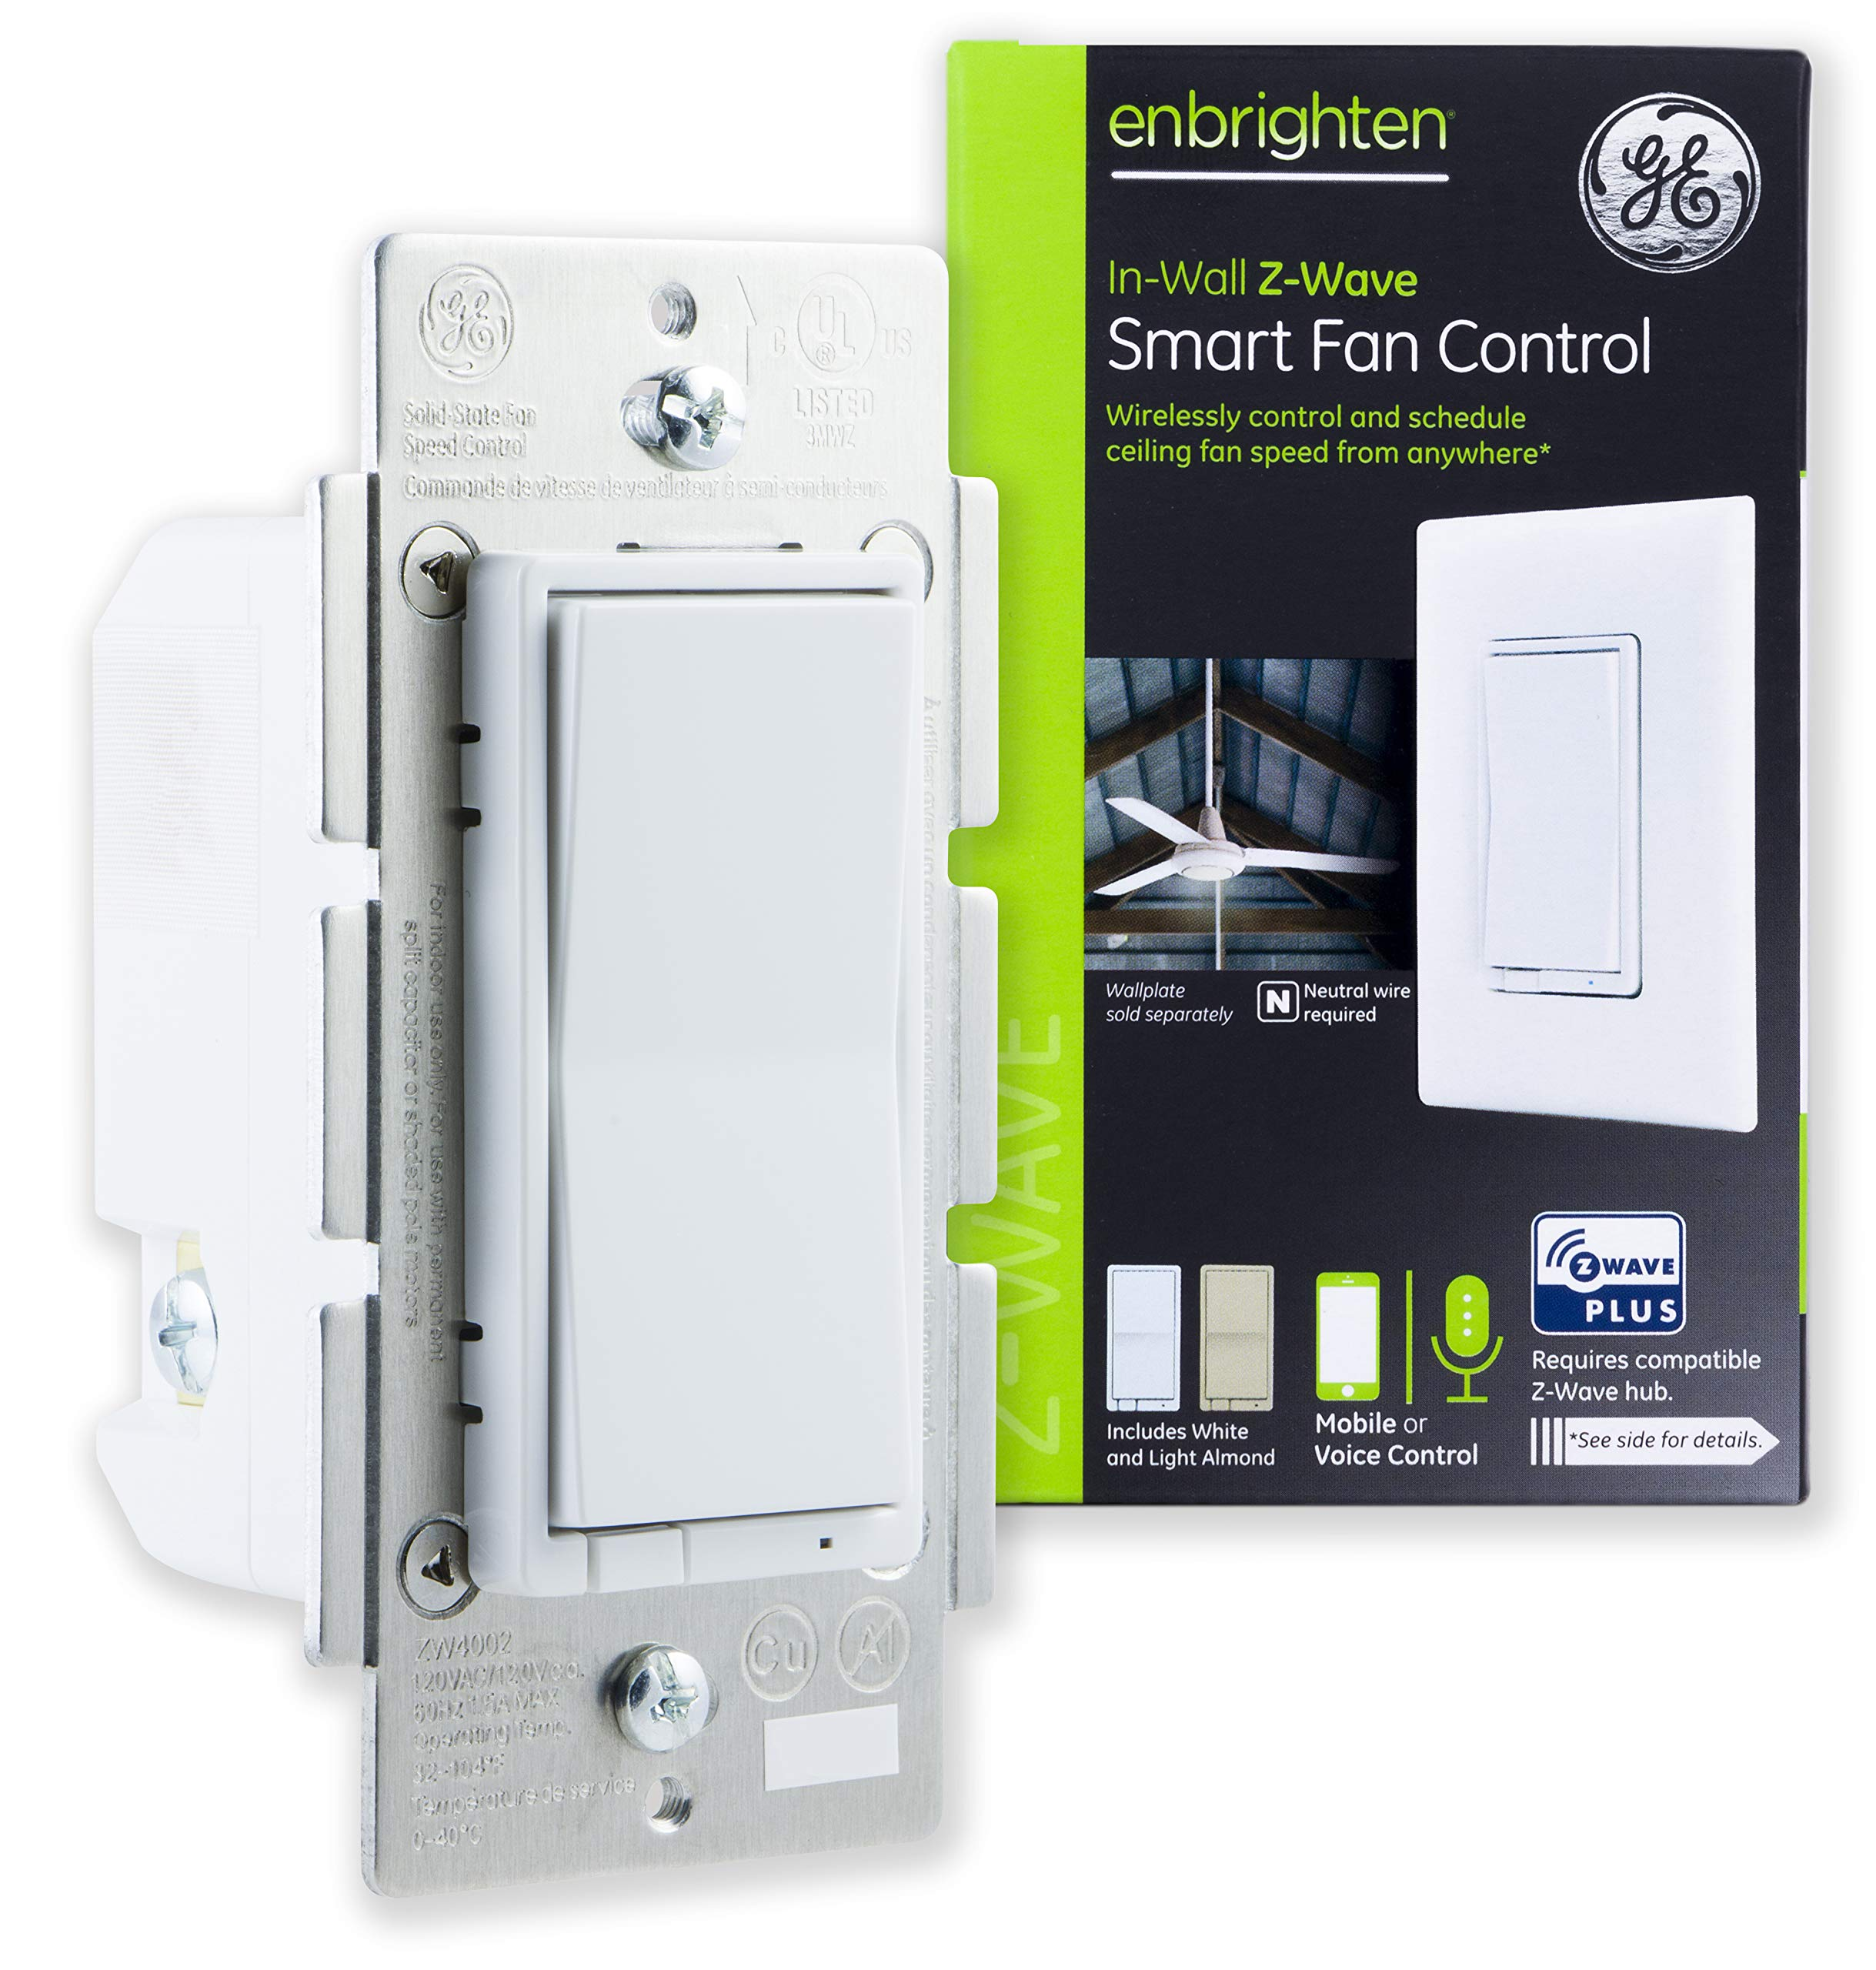 GE Enbrighten Z-Wave Plus Smart Fan Control, Speed ONLY, in-Wall, Includes White & Lt. Almond Paddles, Zwave Hub Required, Works with SmartThings Wink and Alexa, 14287 by GE (Image #1)